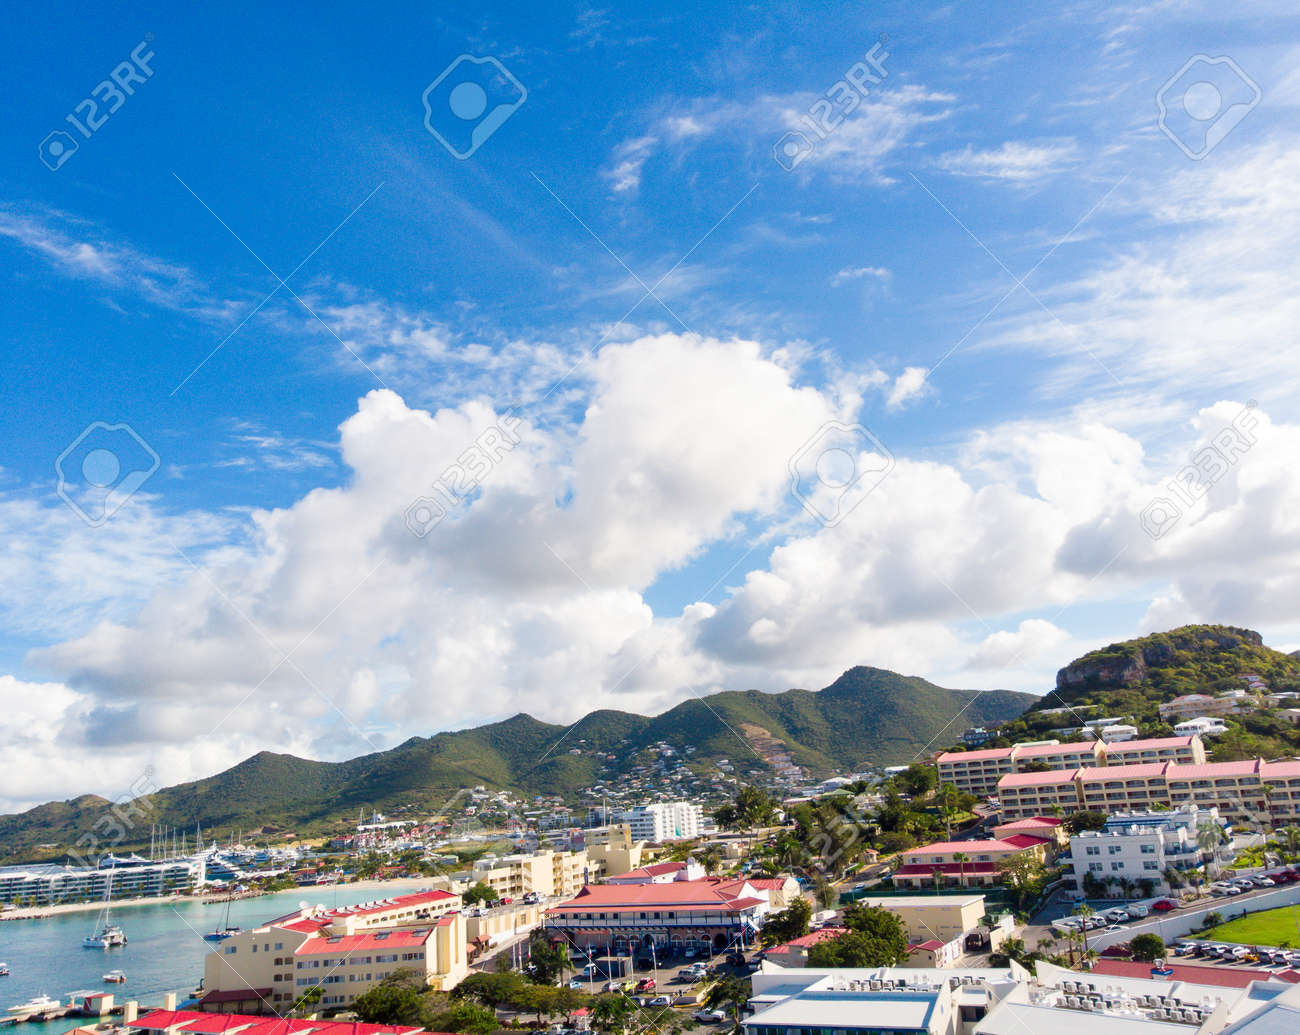 The caribbean island of St.Maarten landscape and cityscape. - 163349887